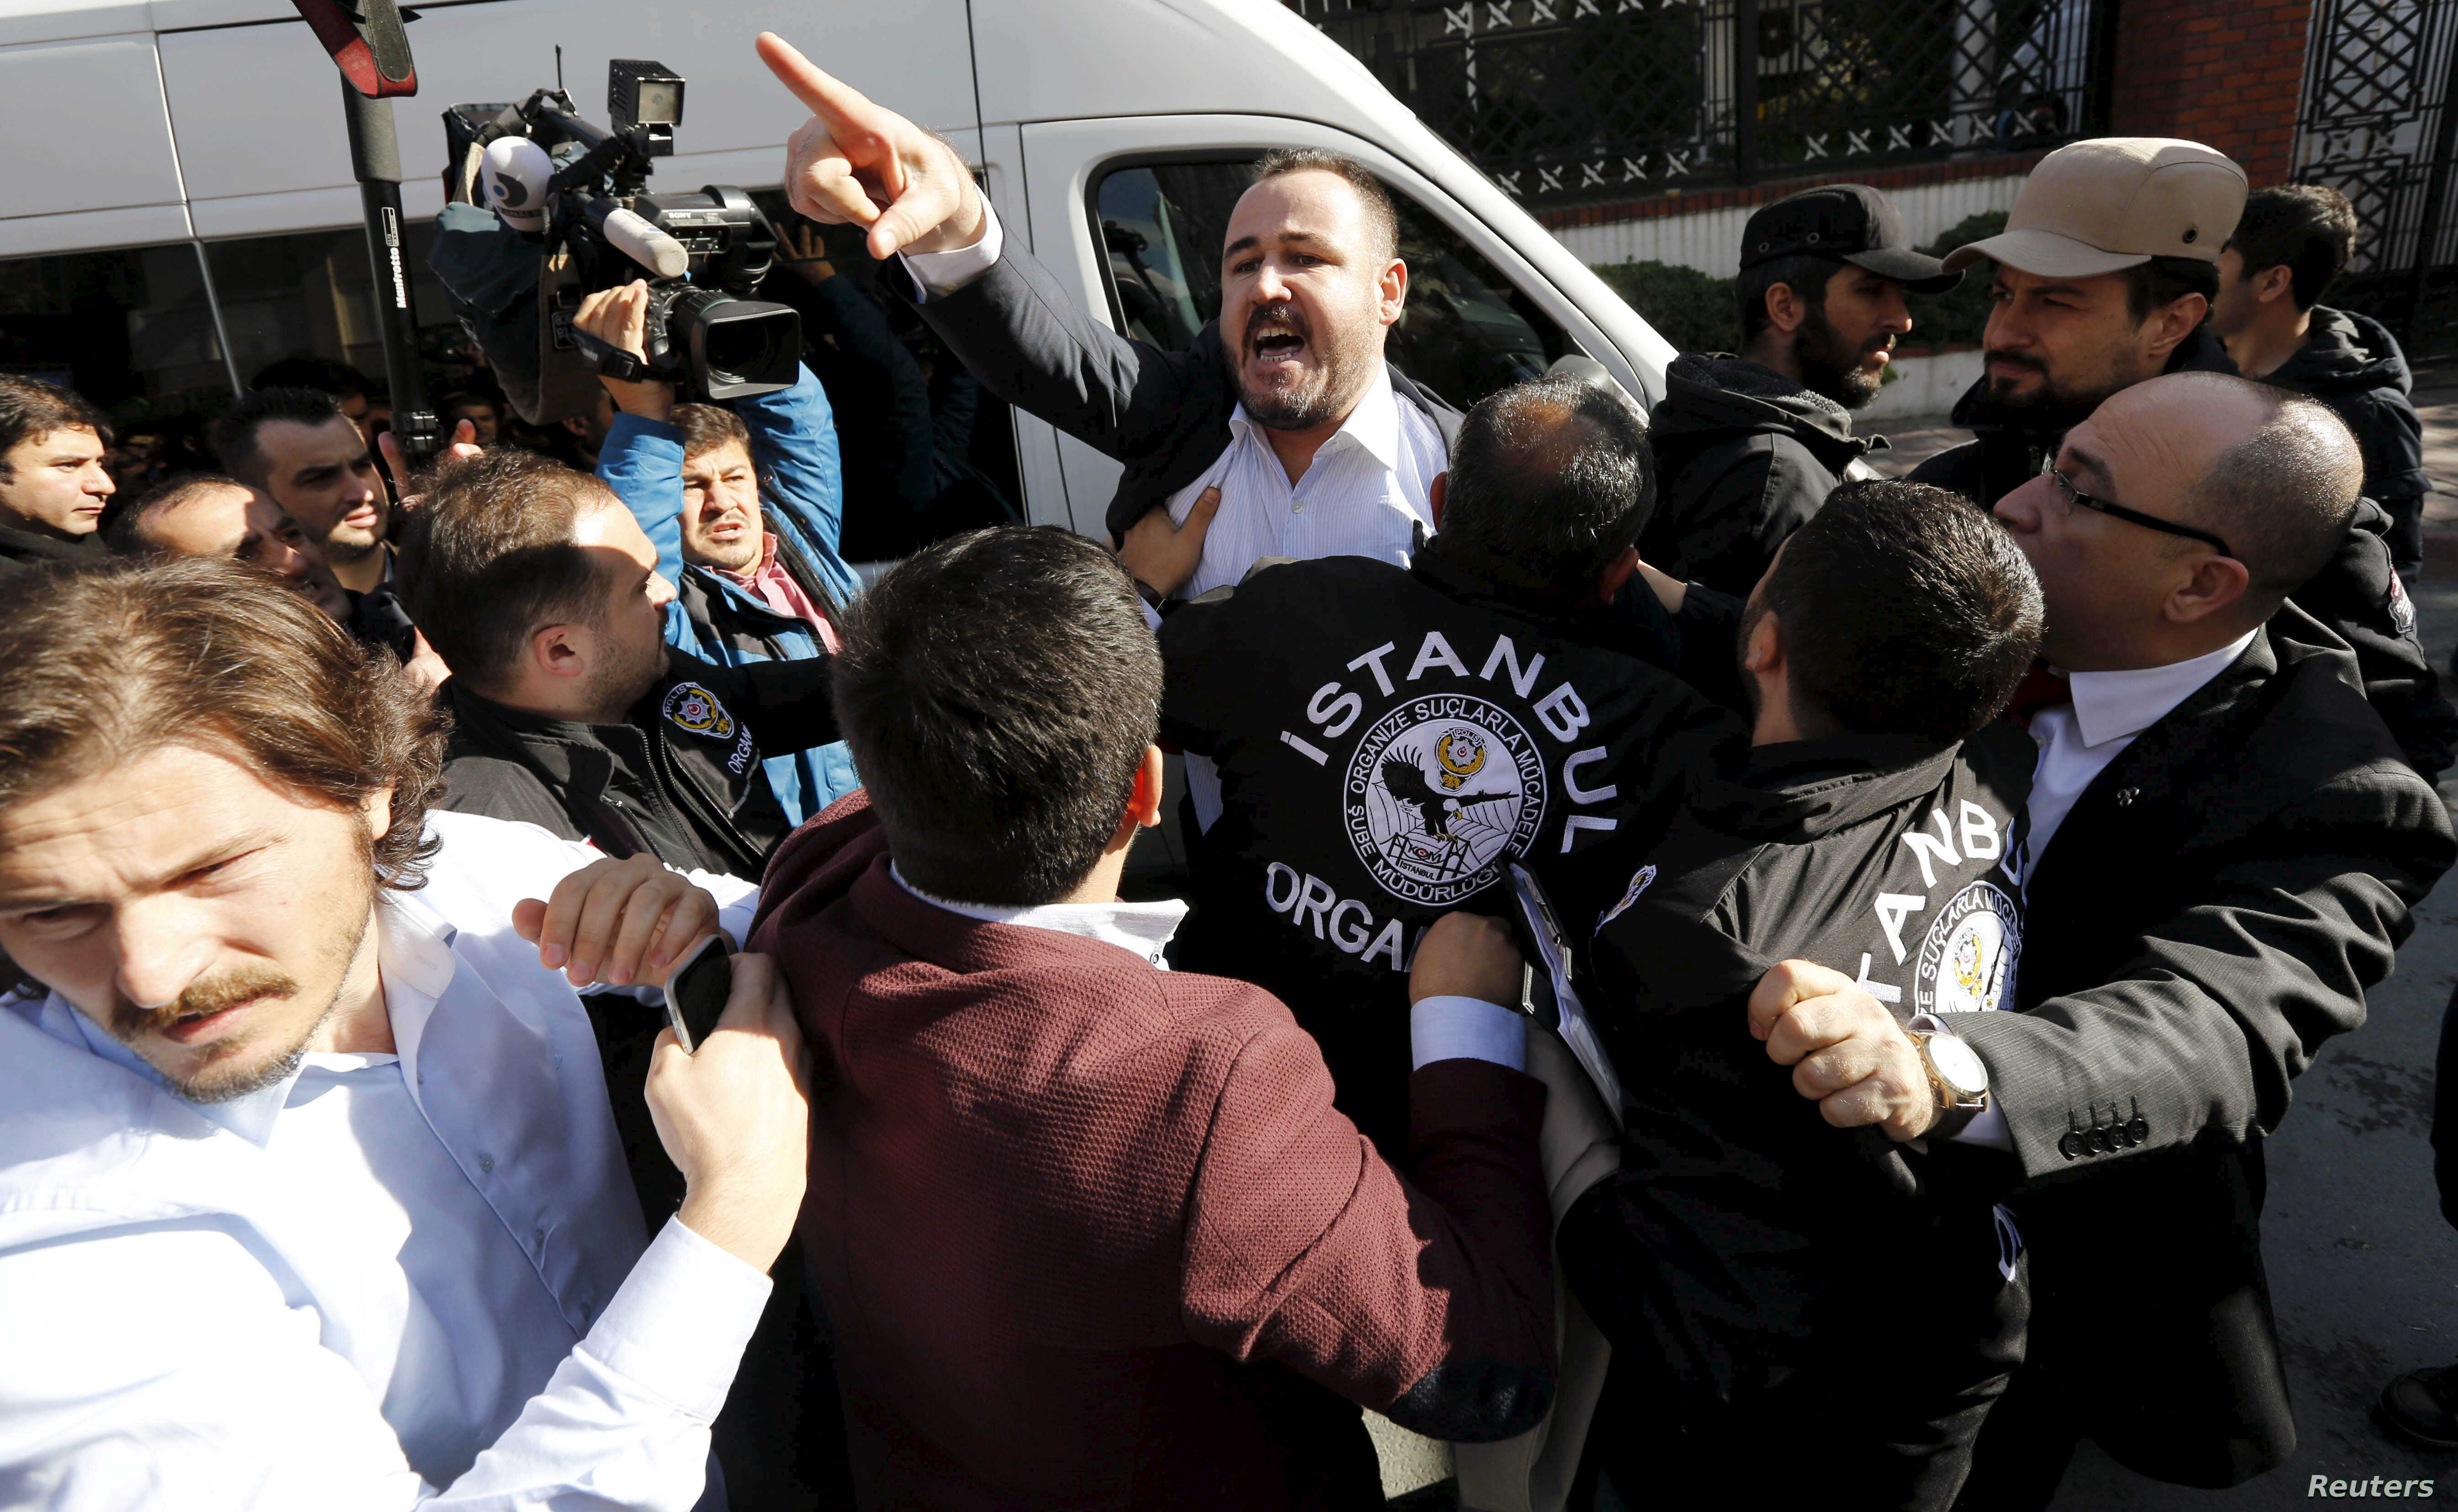 Plainclothes police officers scuffle with a protester outside the Kanalturk and Bugun TV building in Istanbul, Turkey, Oct. 28, 2015.